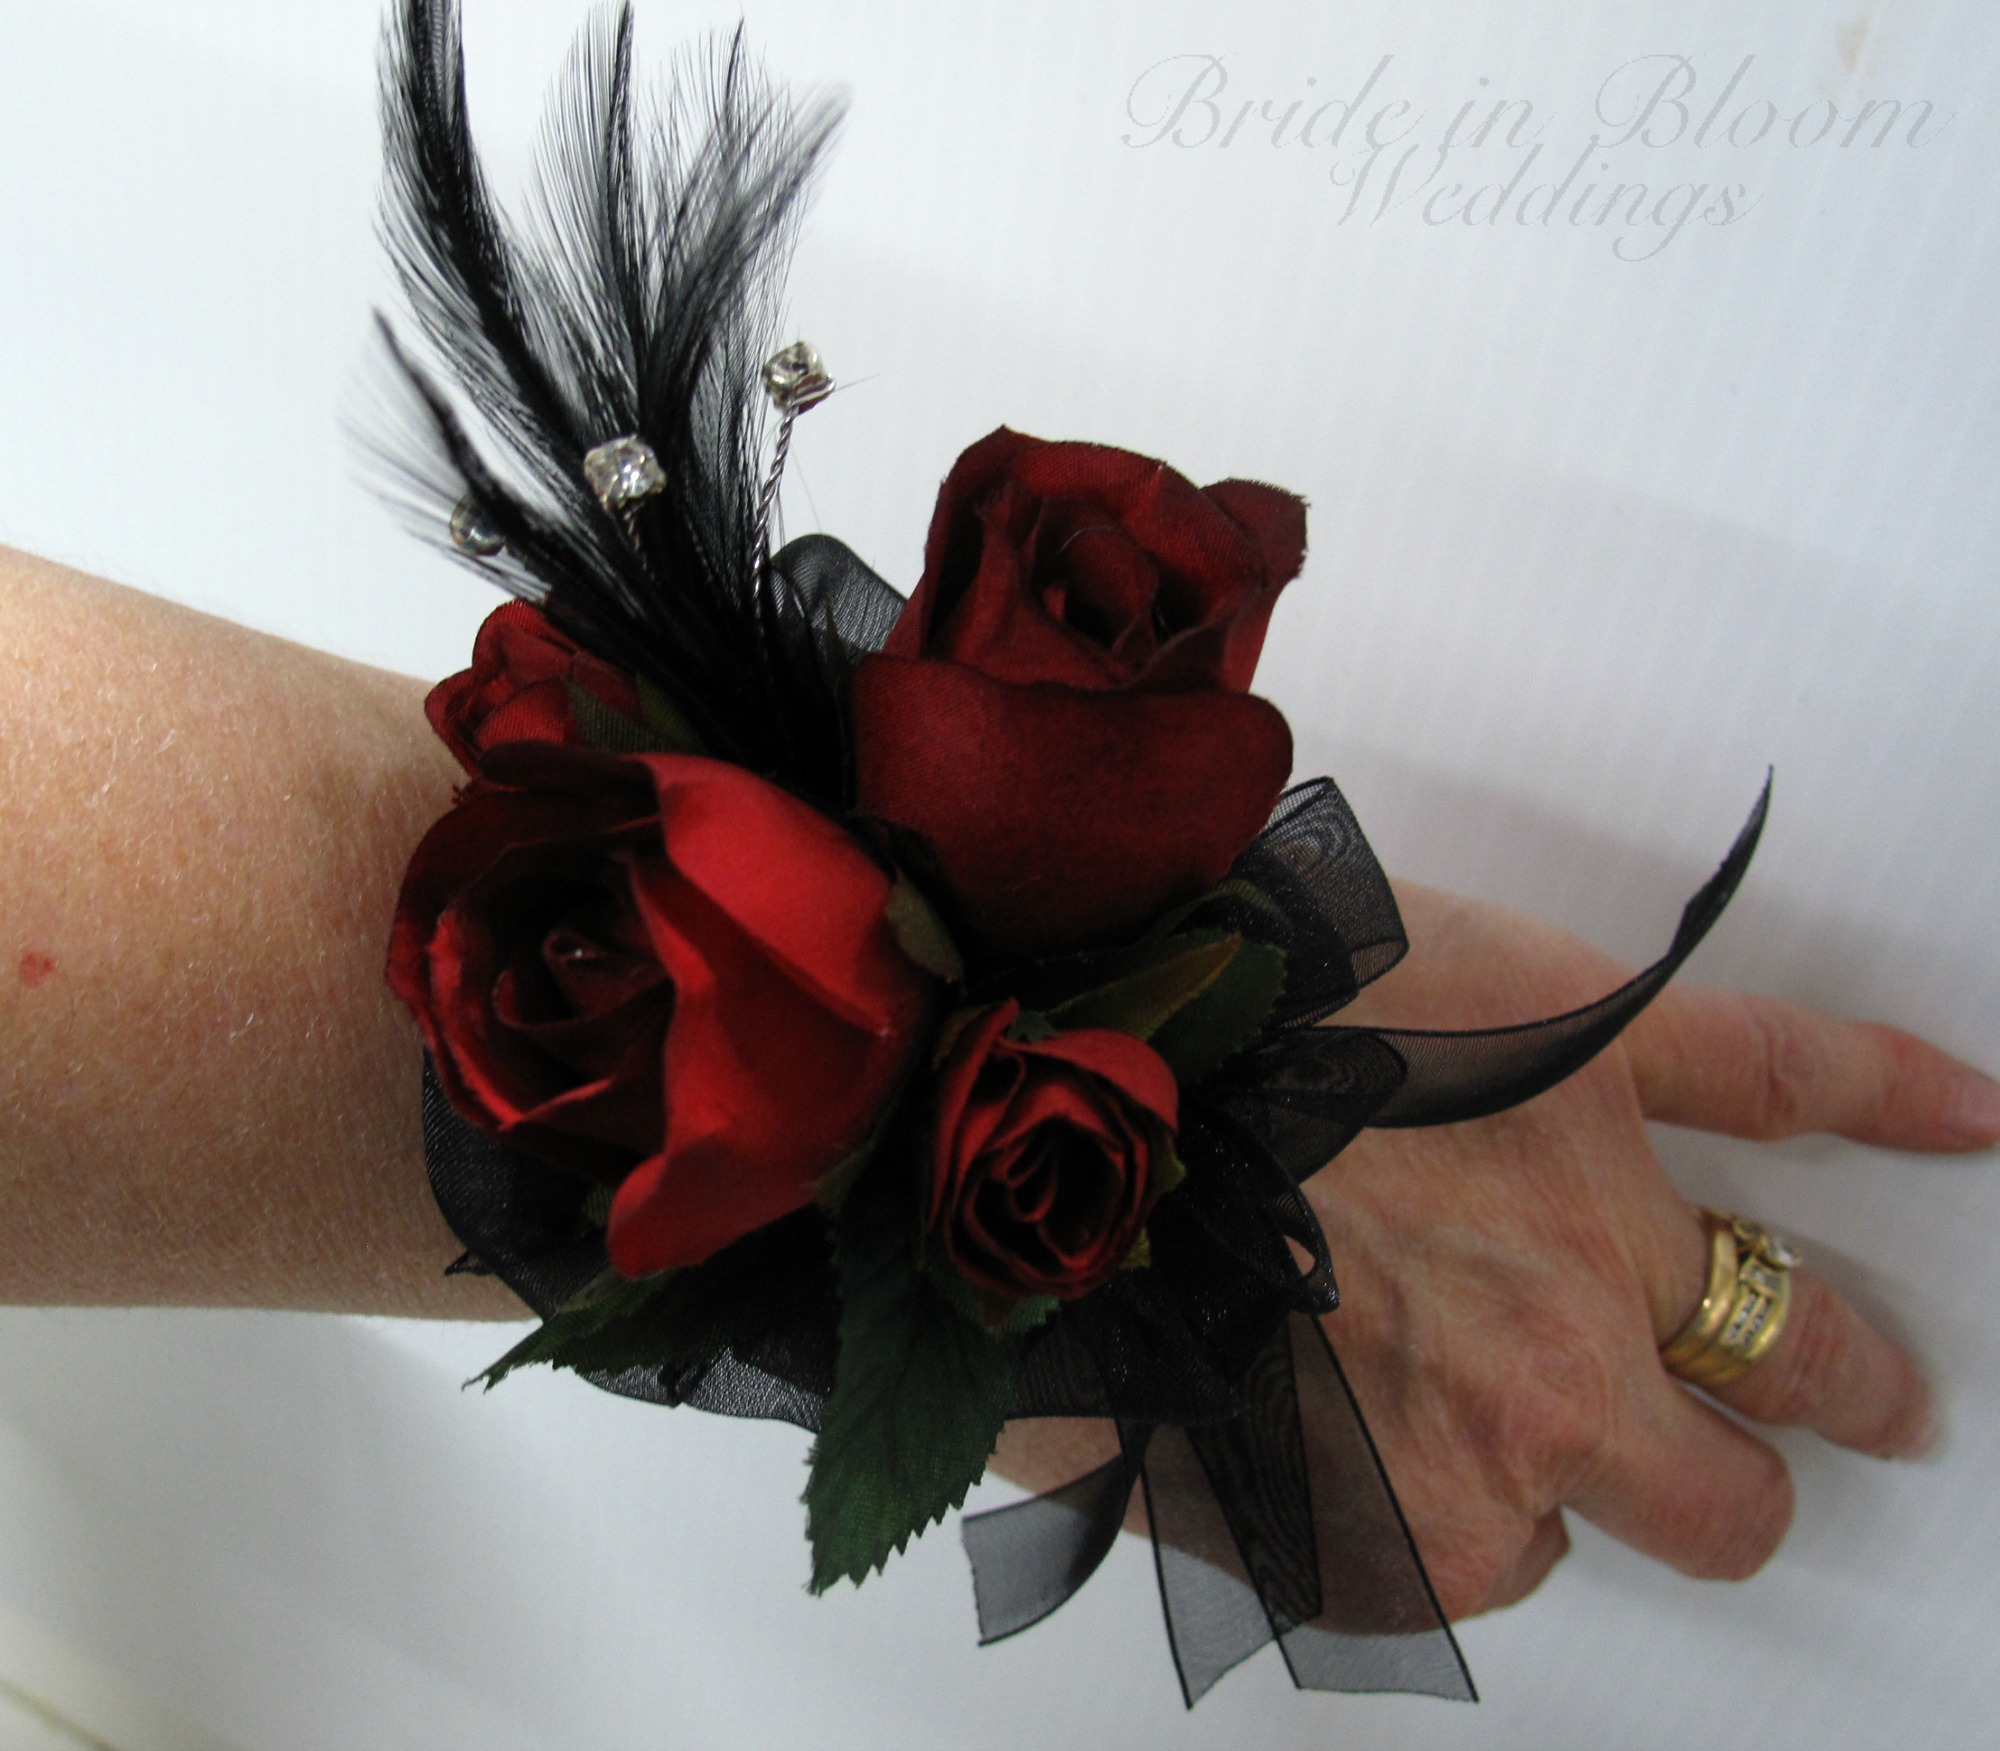 Red black rose wrist corsage | Bride in Bloom